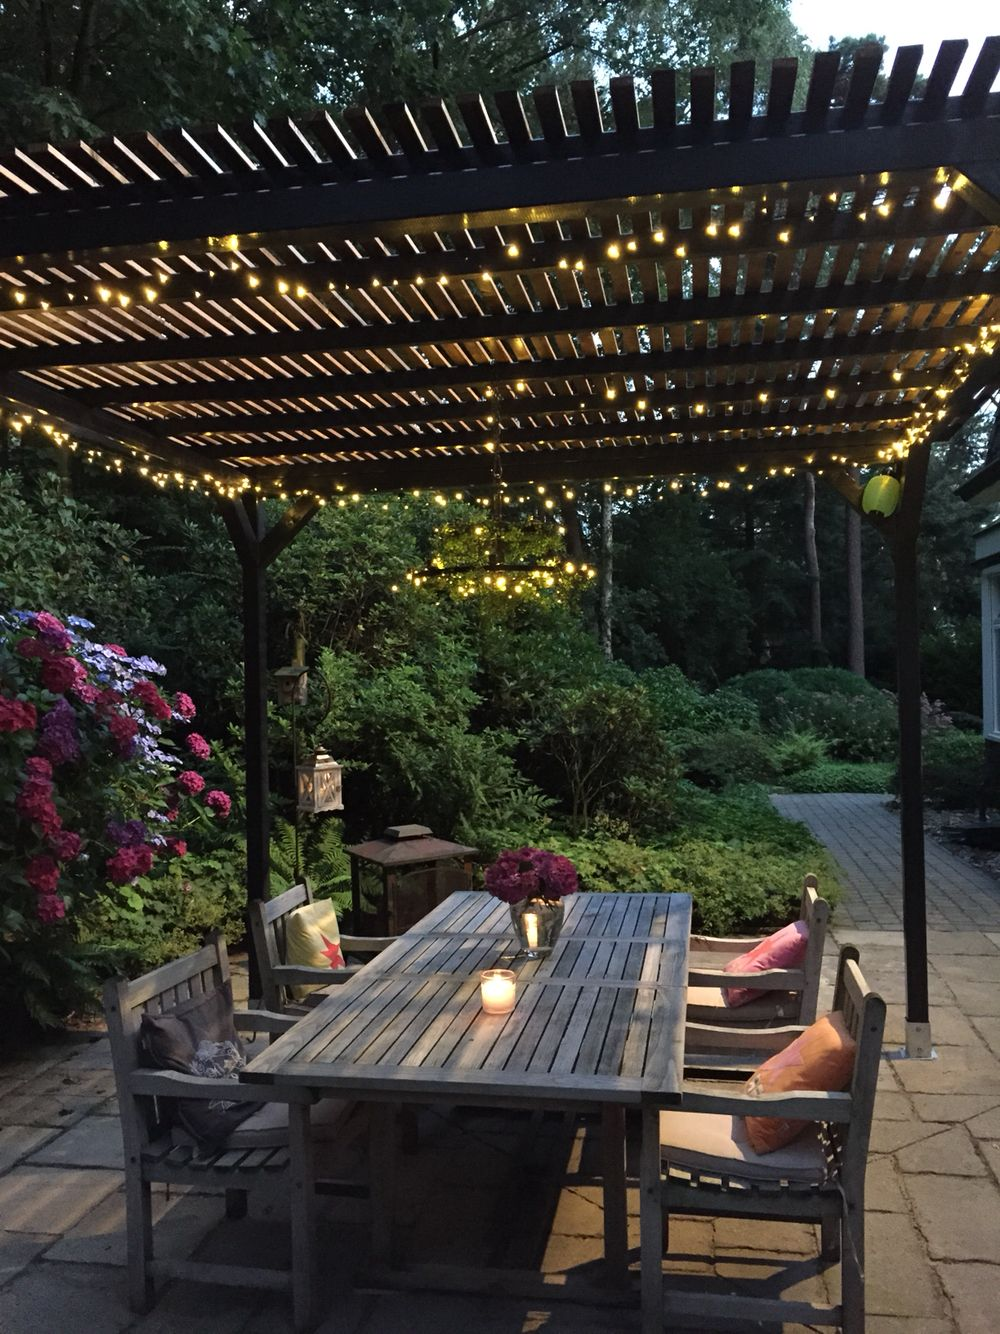 Dream Pergola With Fairy Lights Chandelier Self Made